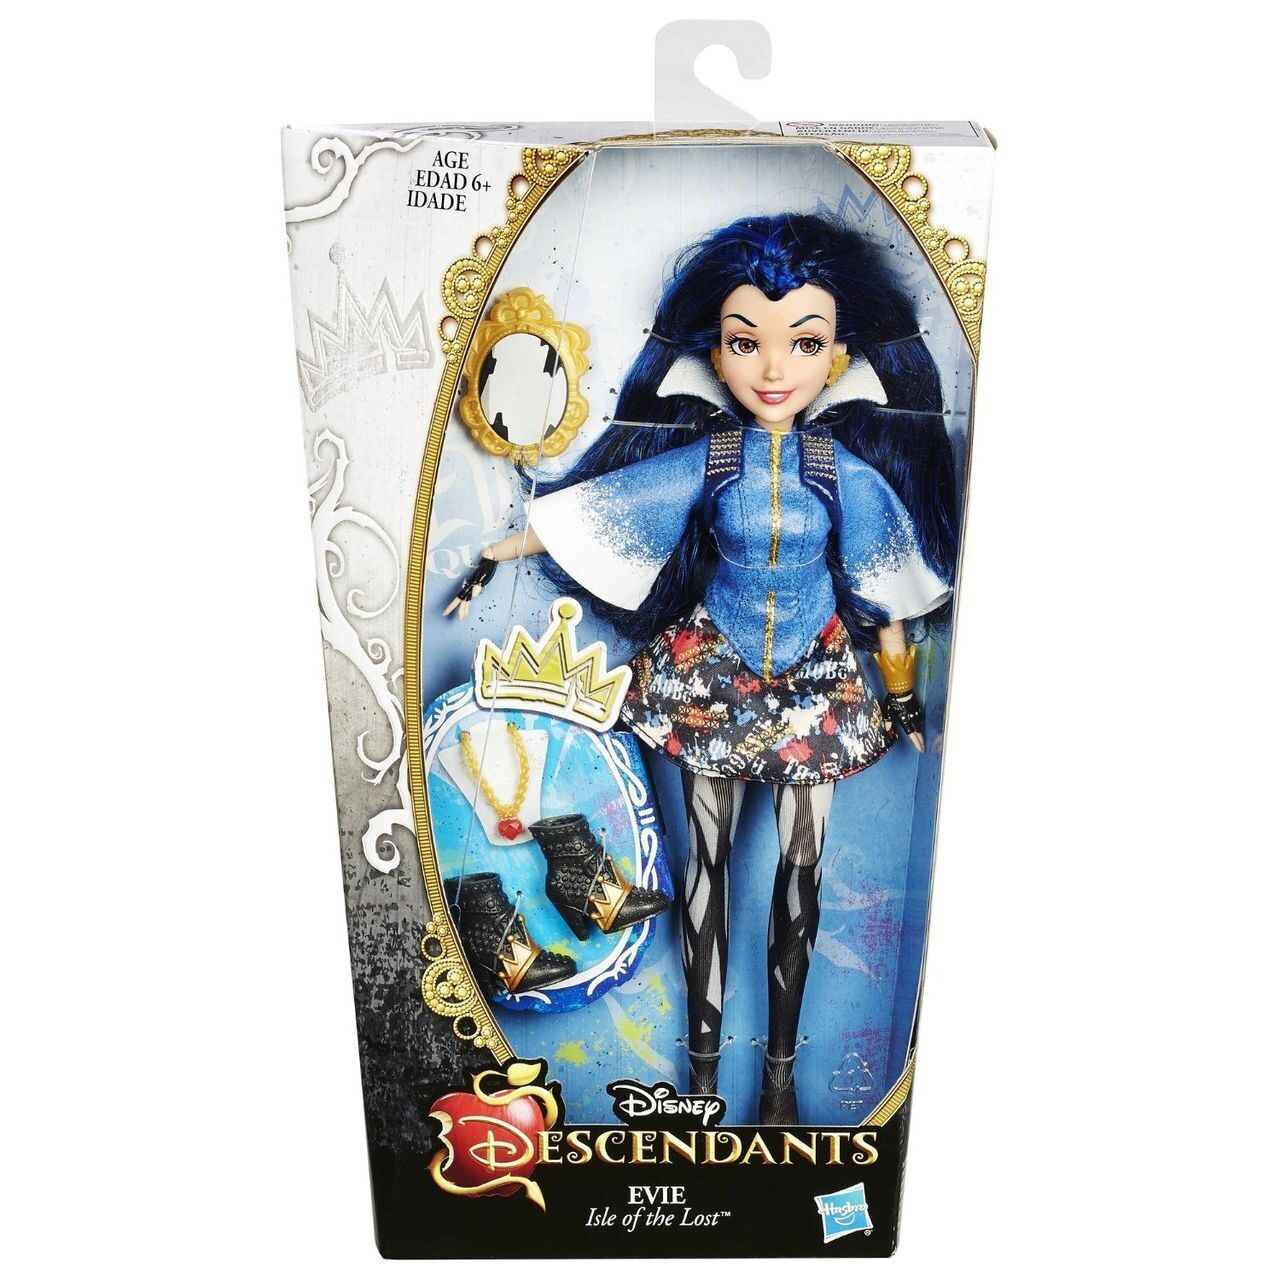 Disney_Descendants_Villain_Descendants_Signature_Evie2